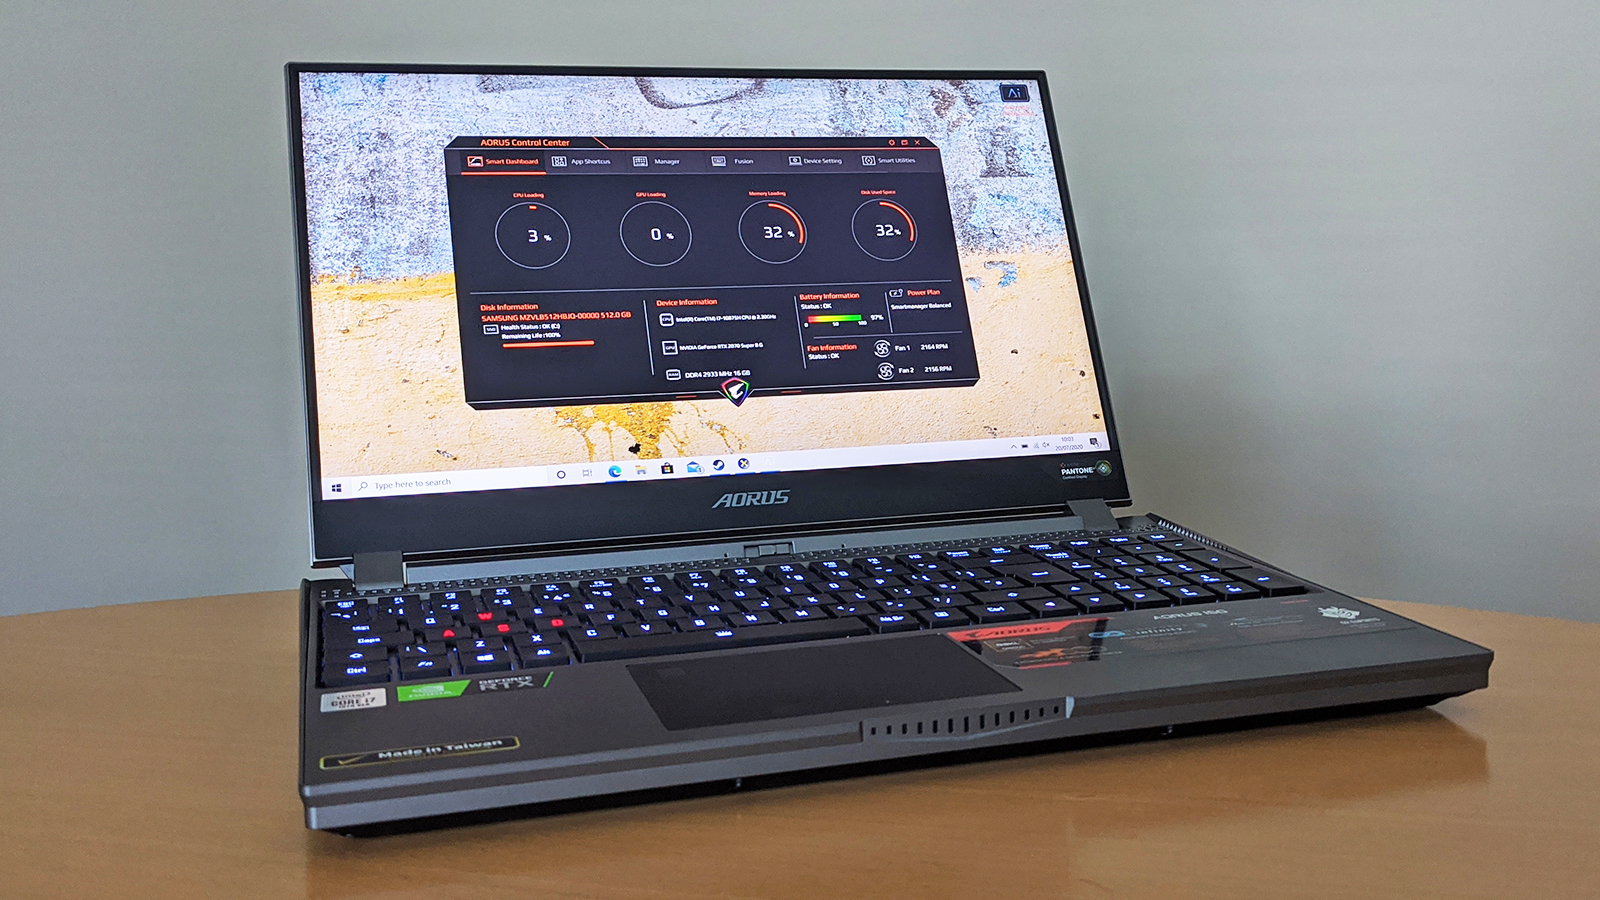 Gigabyte Aorus 15g Review A Compact Gaming Laptop With A Mechanical Keyboard T3